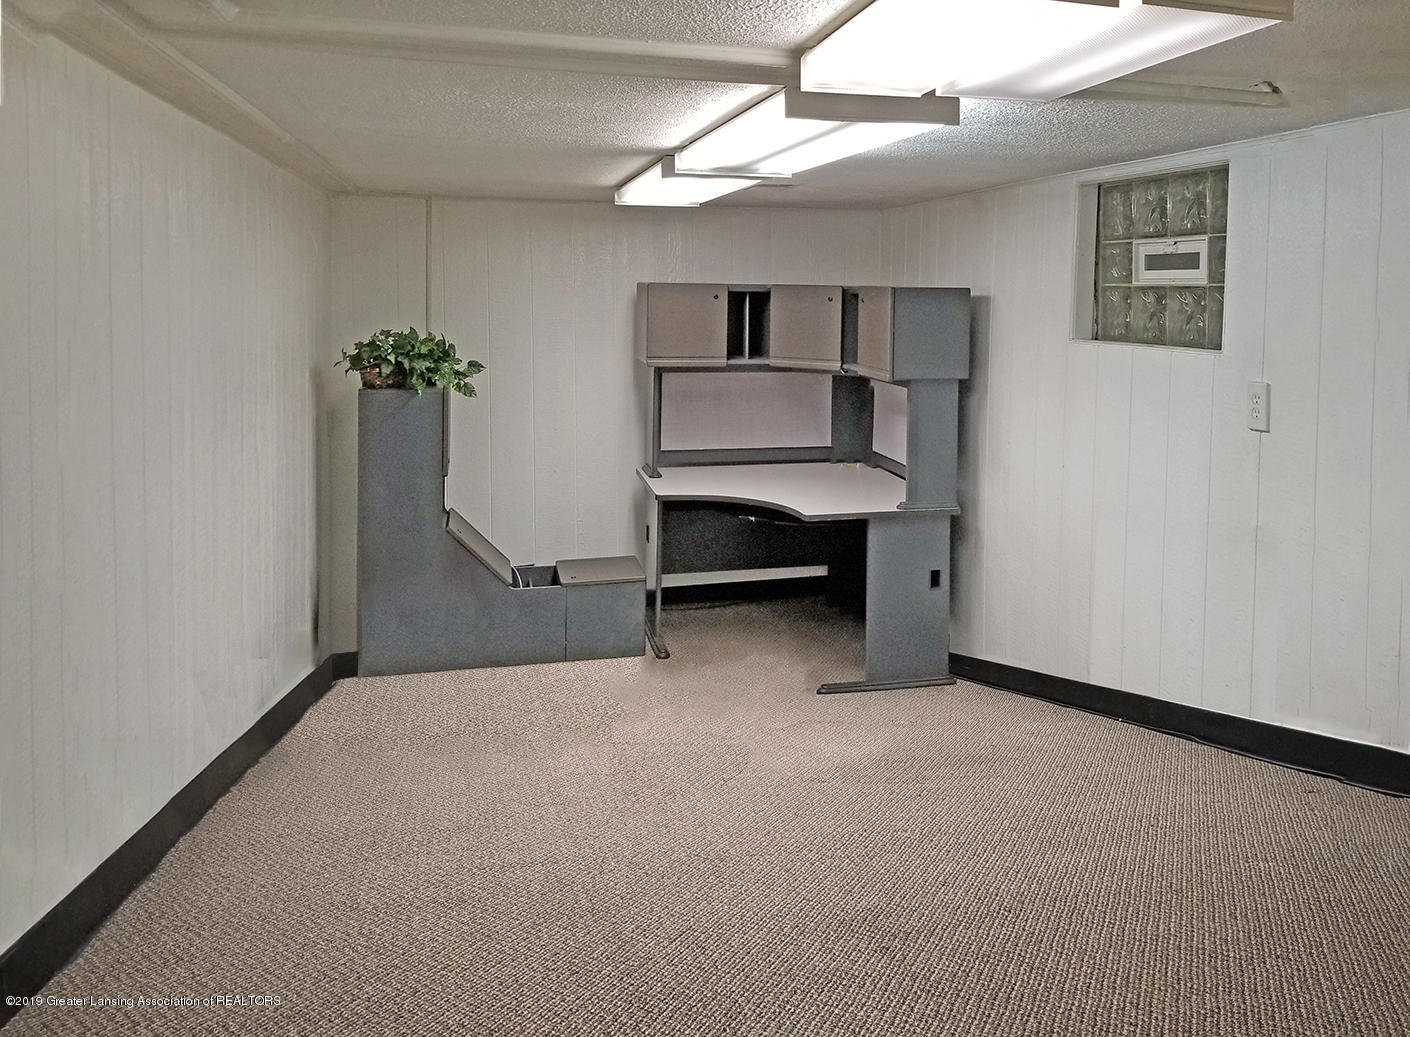 2208 Clifton Ave - Basement Office Area - Room for 3 Cubicl - 21